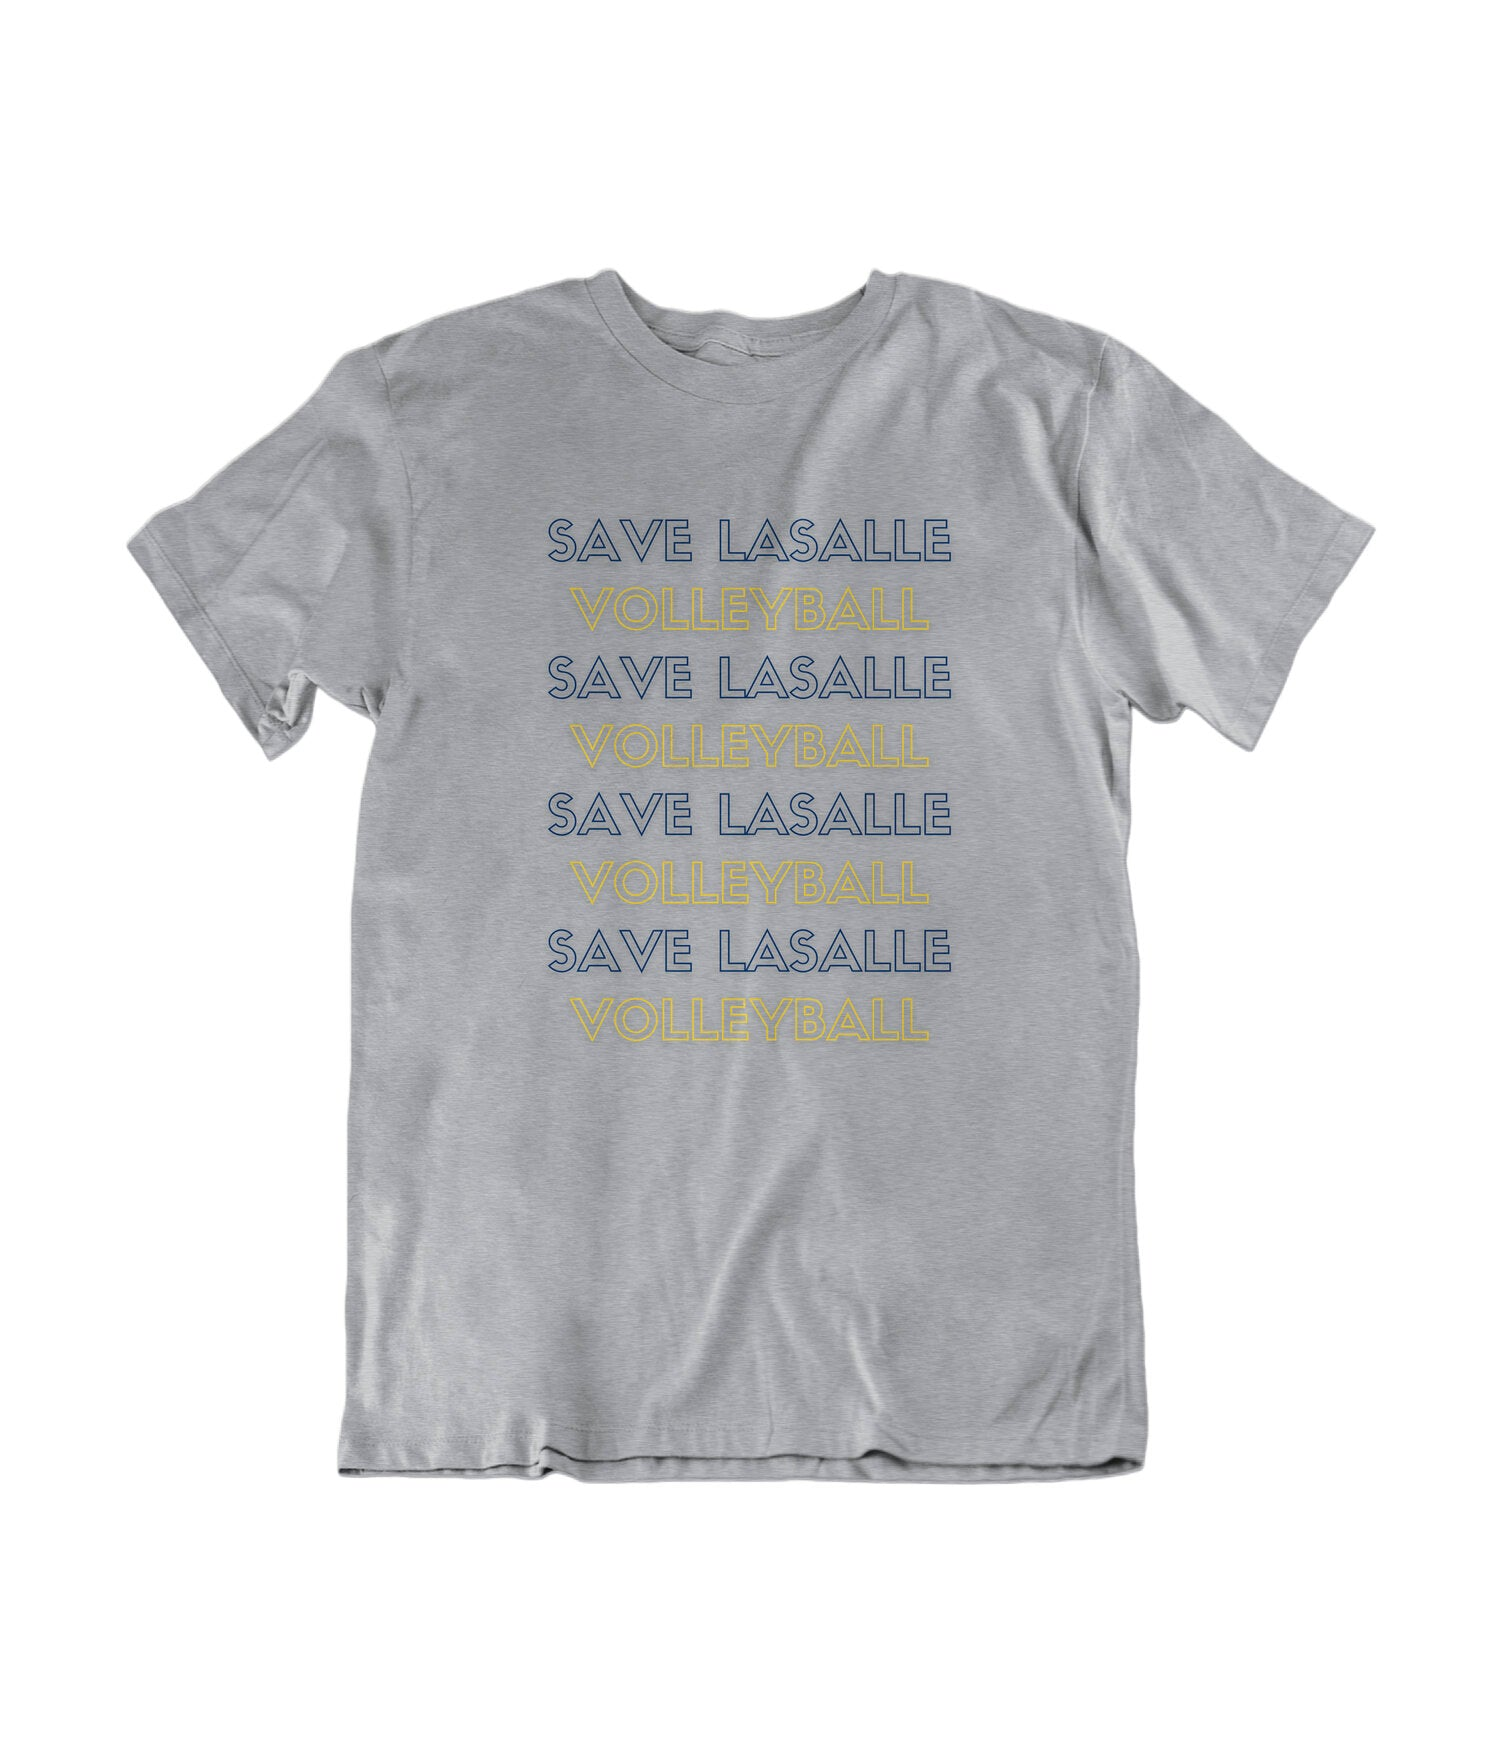 Save Lasalle Volleyball